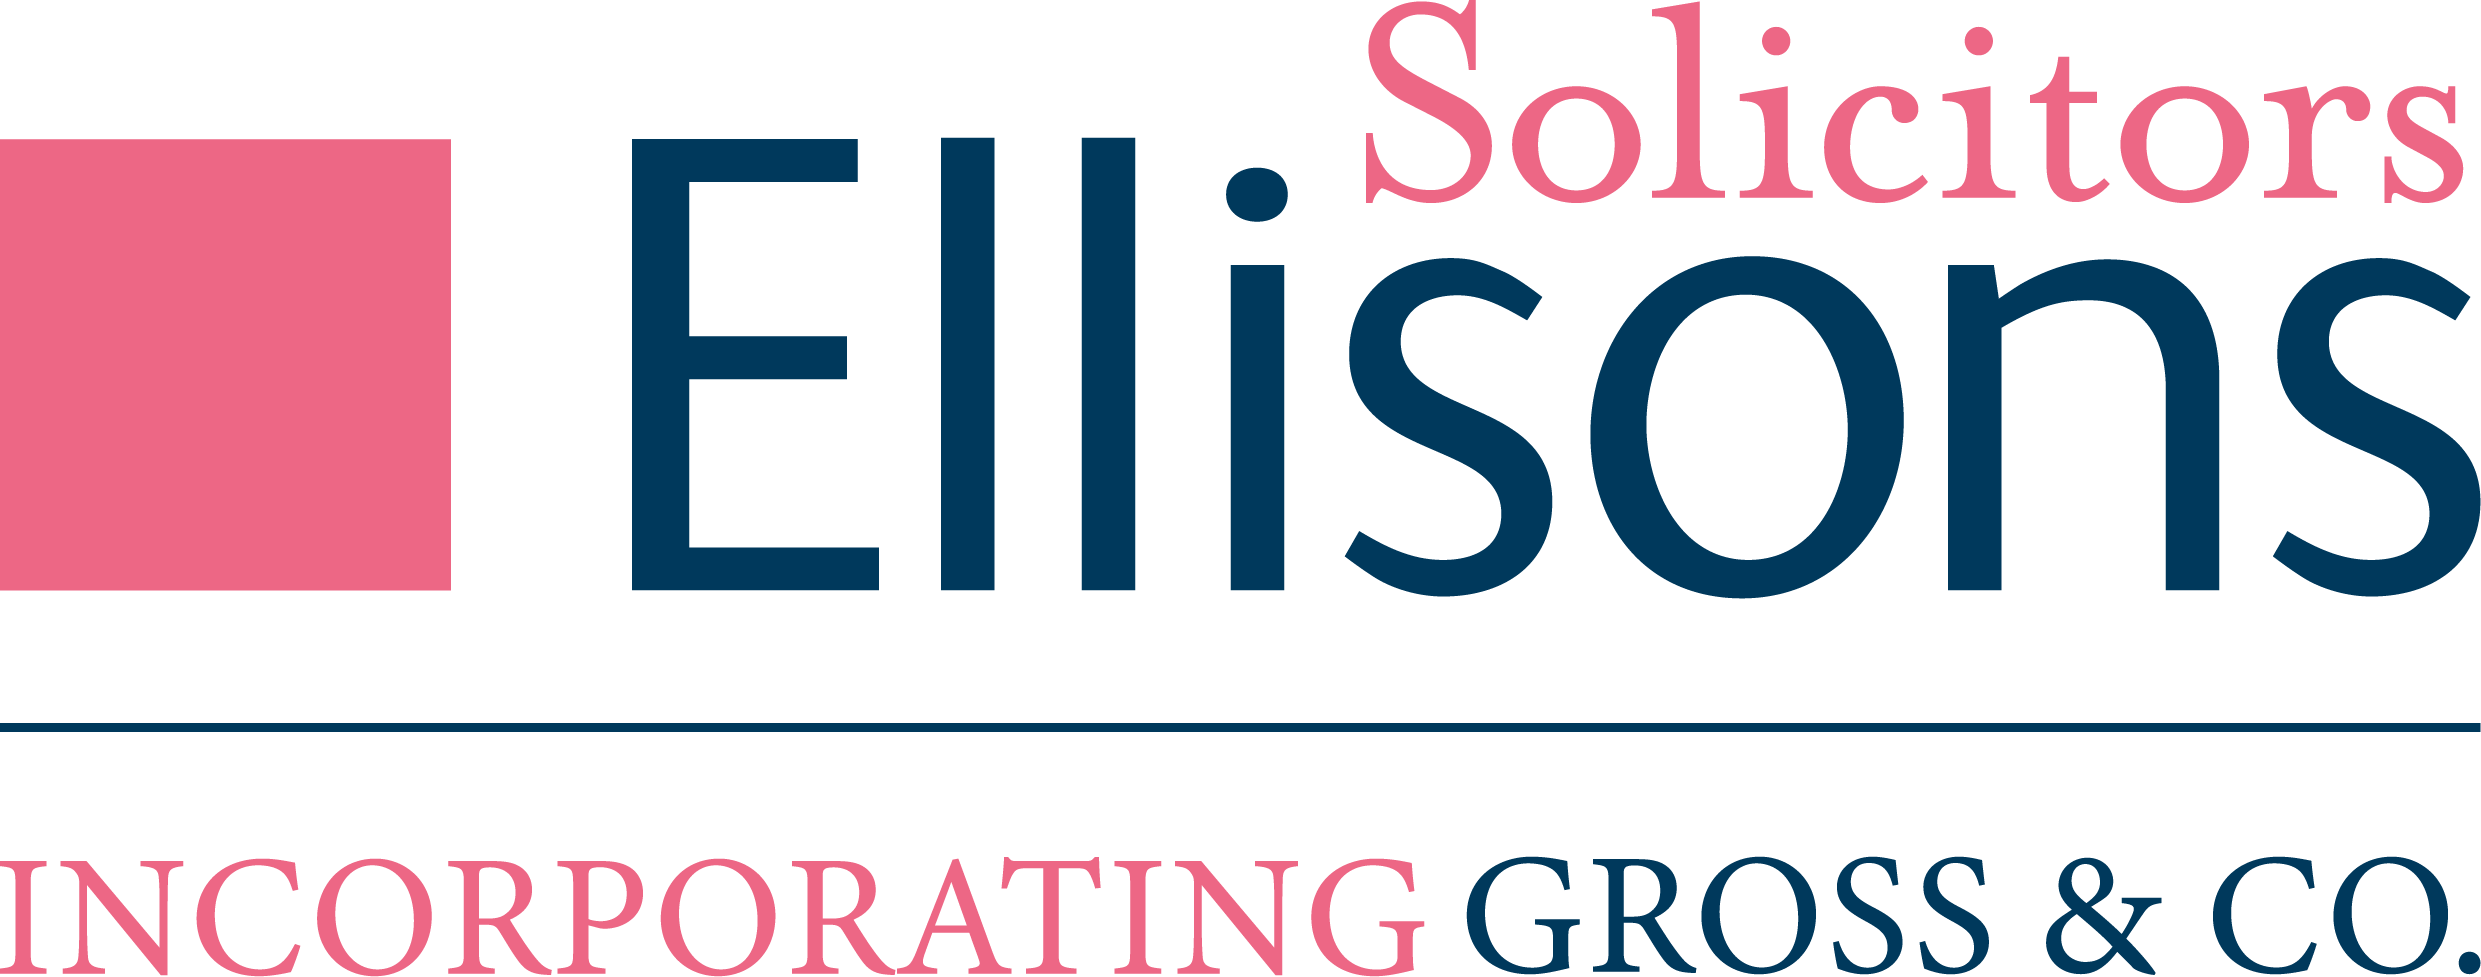 Ellisons Solicitors incorporating Gross & Co. logo